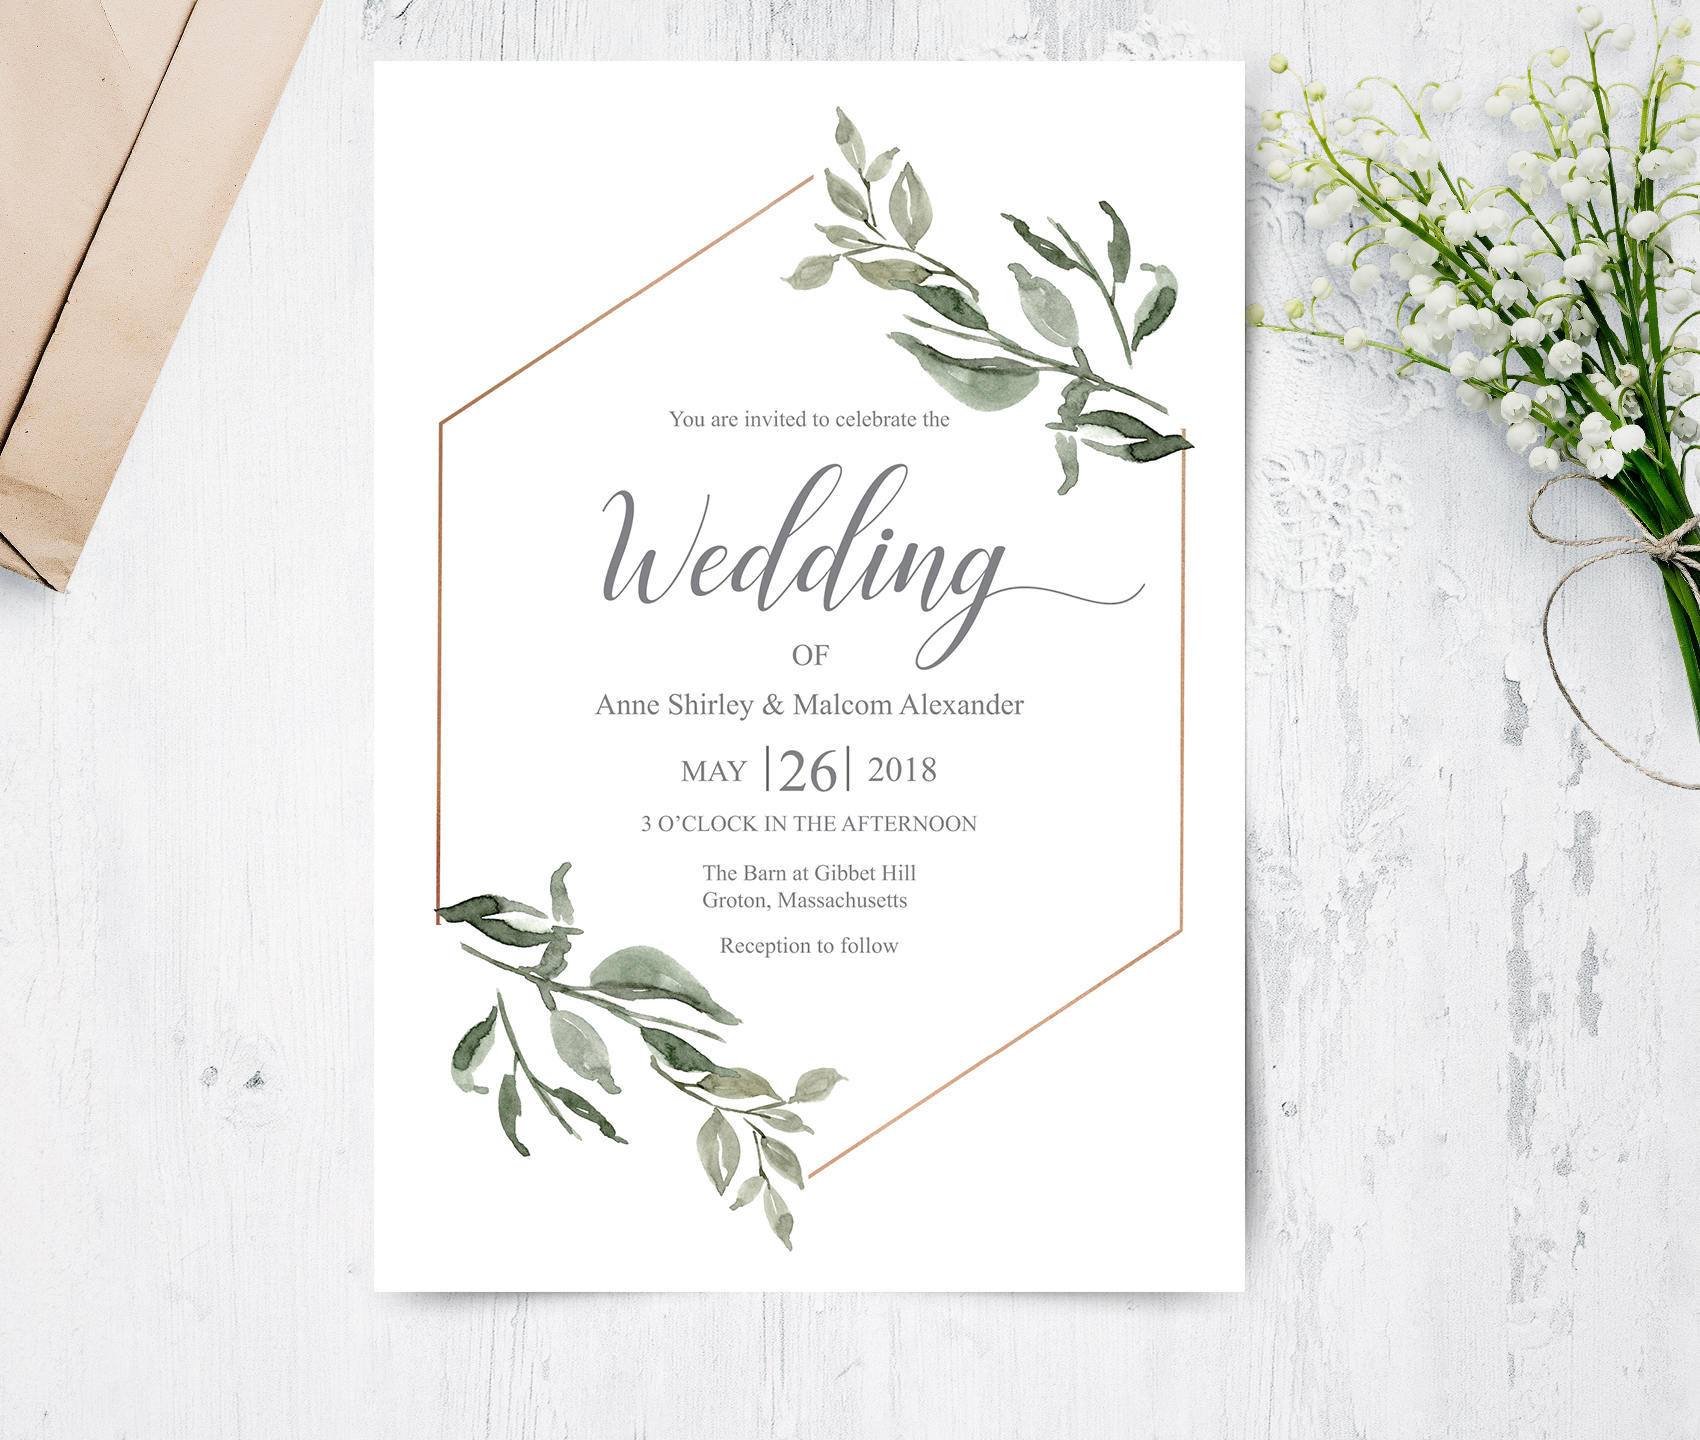 Wedding Images For Invitations: Greenery Geometric Wedding Invitation Botanical Invitation